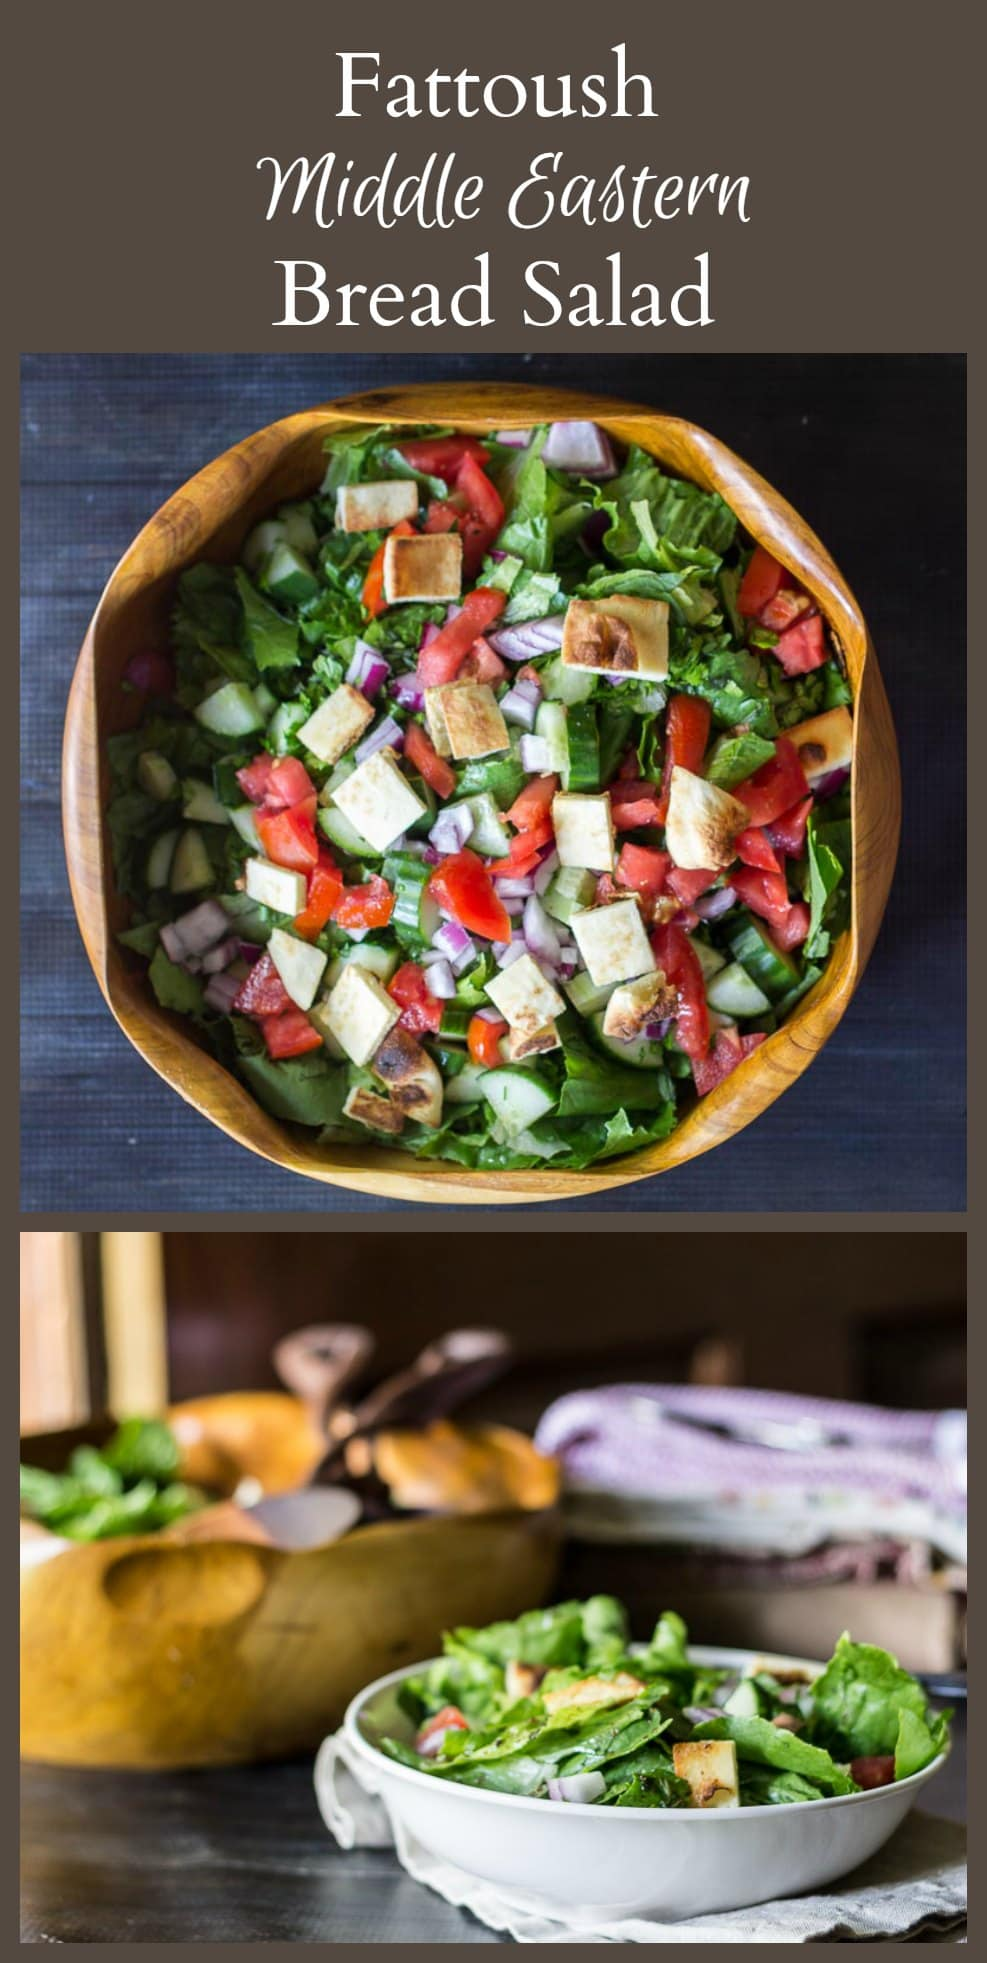 Learn about this tasty middle eastern bread salad known as Fattoush. Using a few unique ingredients making for an interesting twist on the everyday salad.